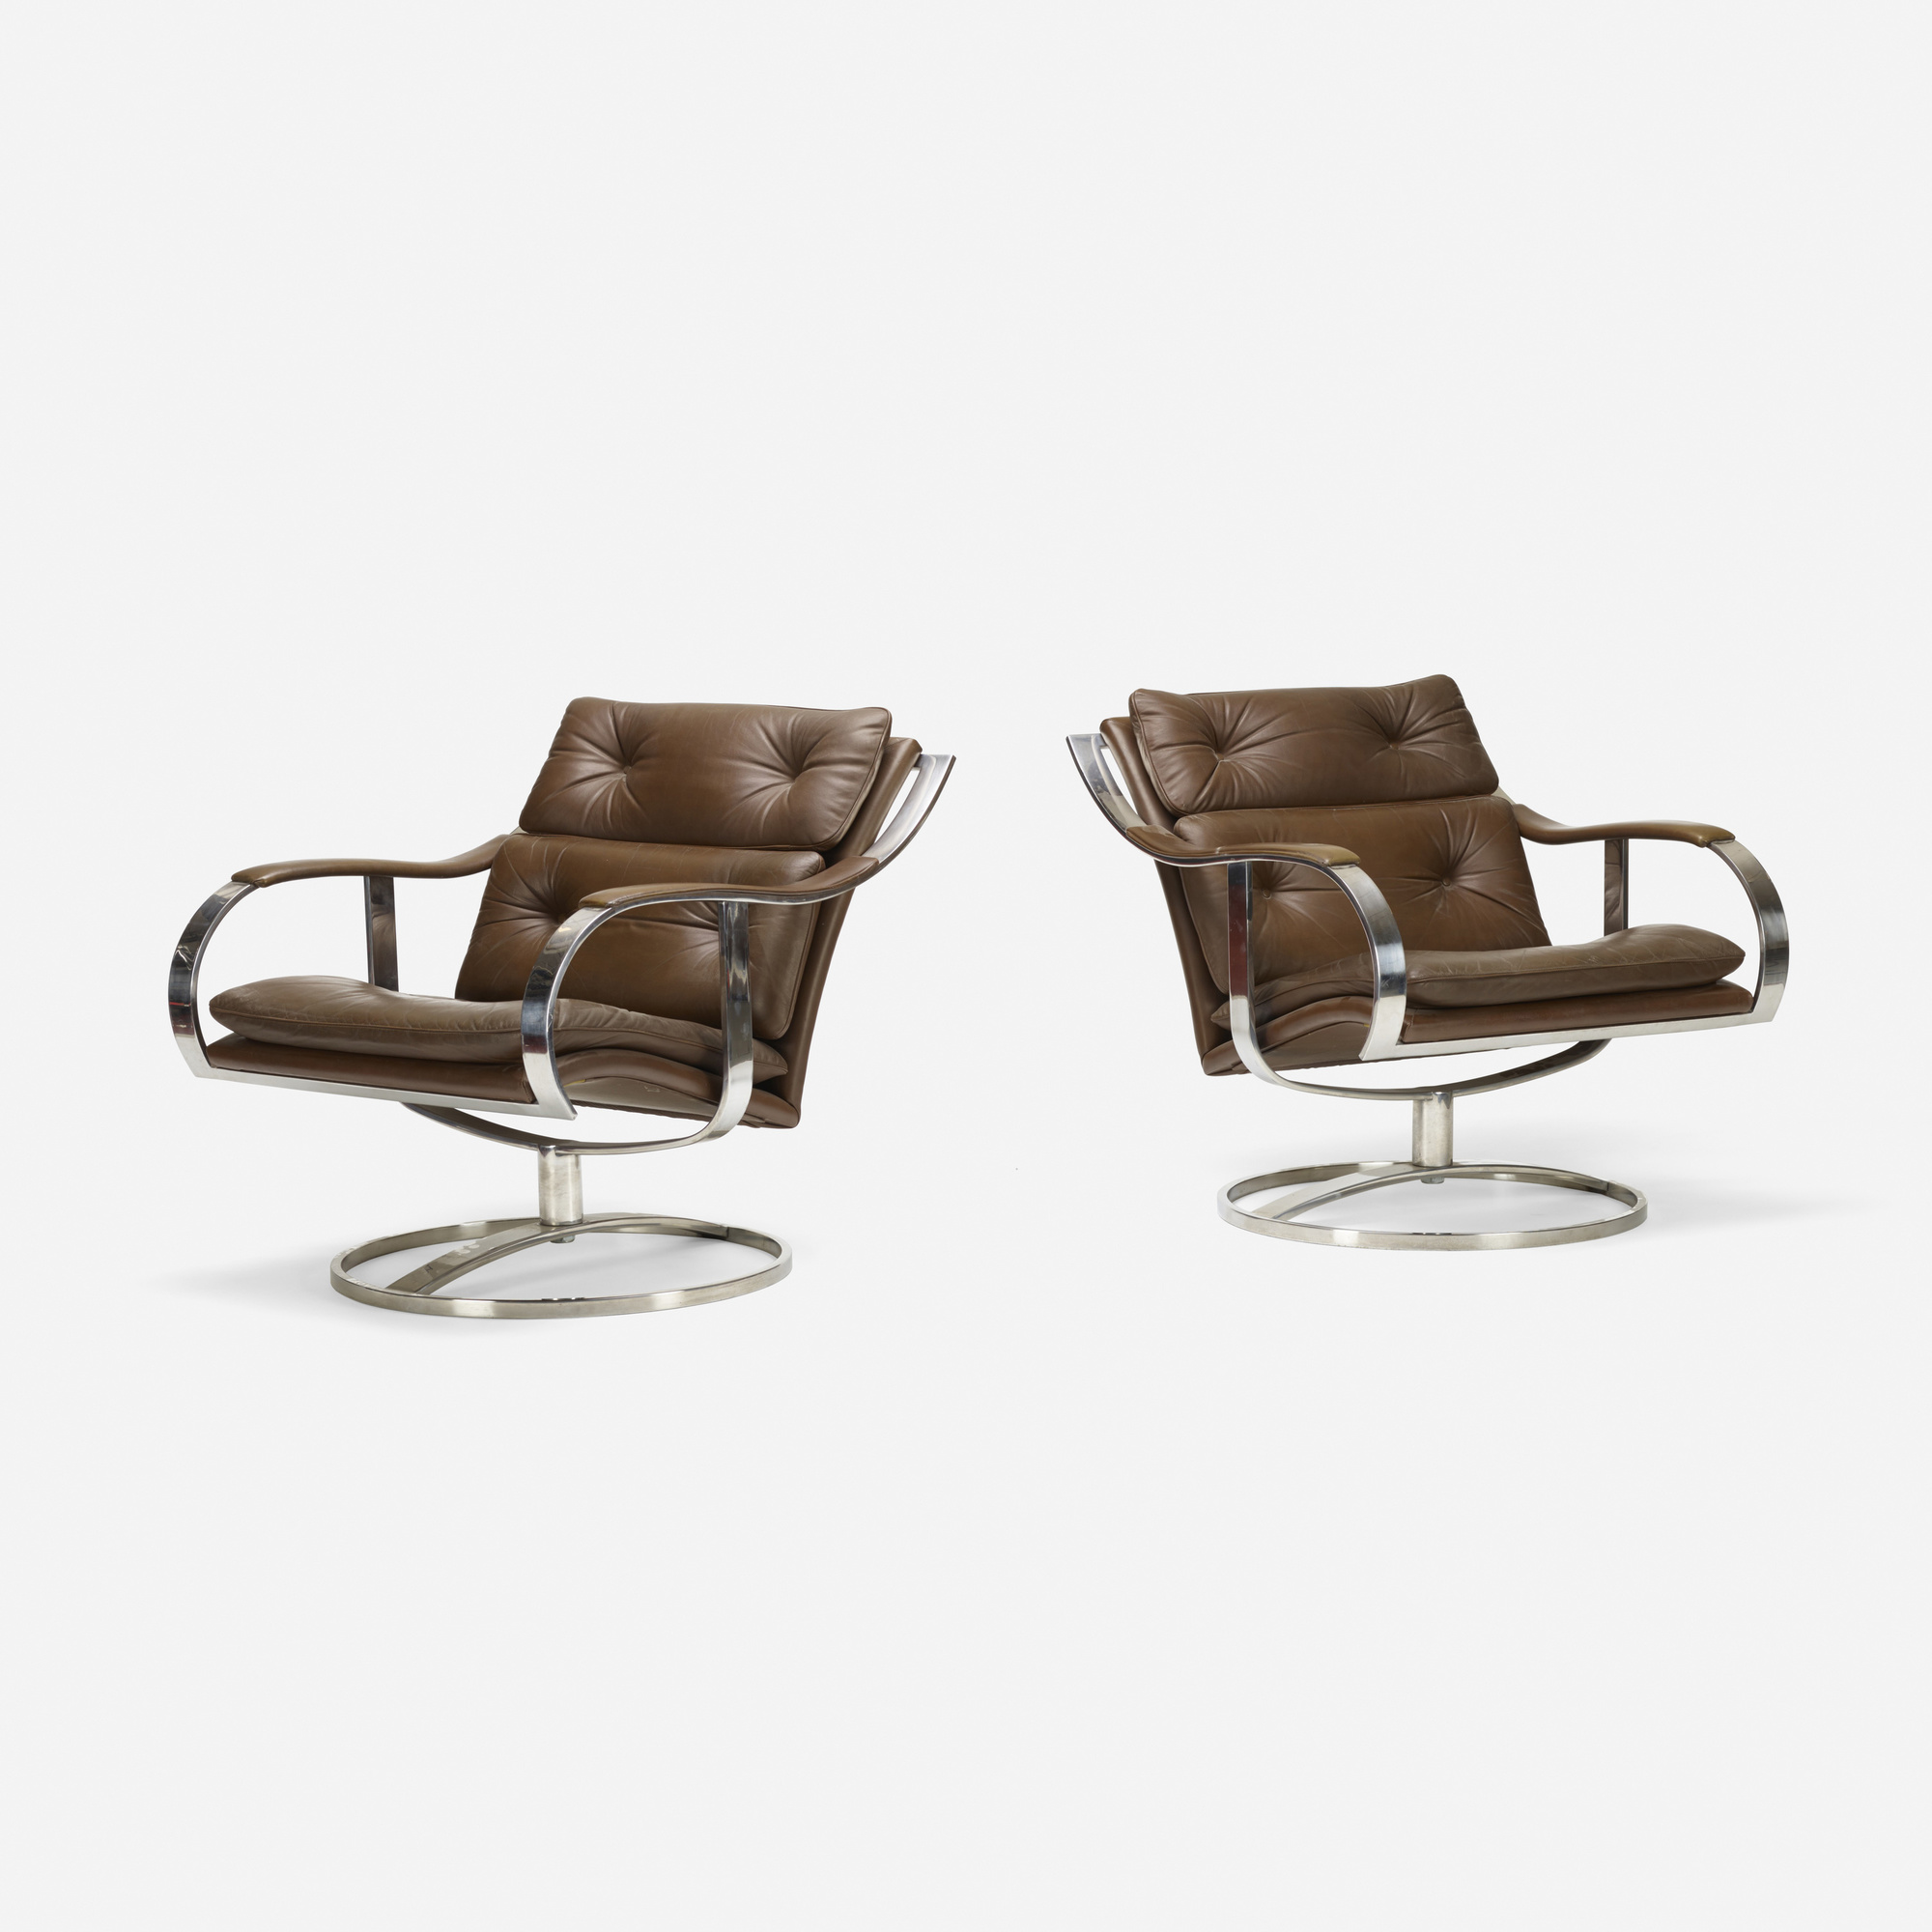 334: Gardner Leaver / lounge chairs, pair (1 of 2)